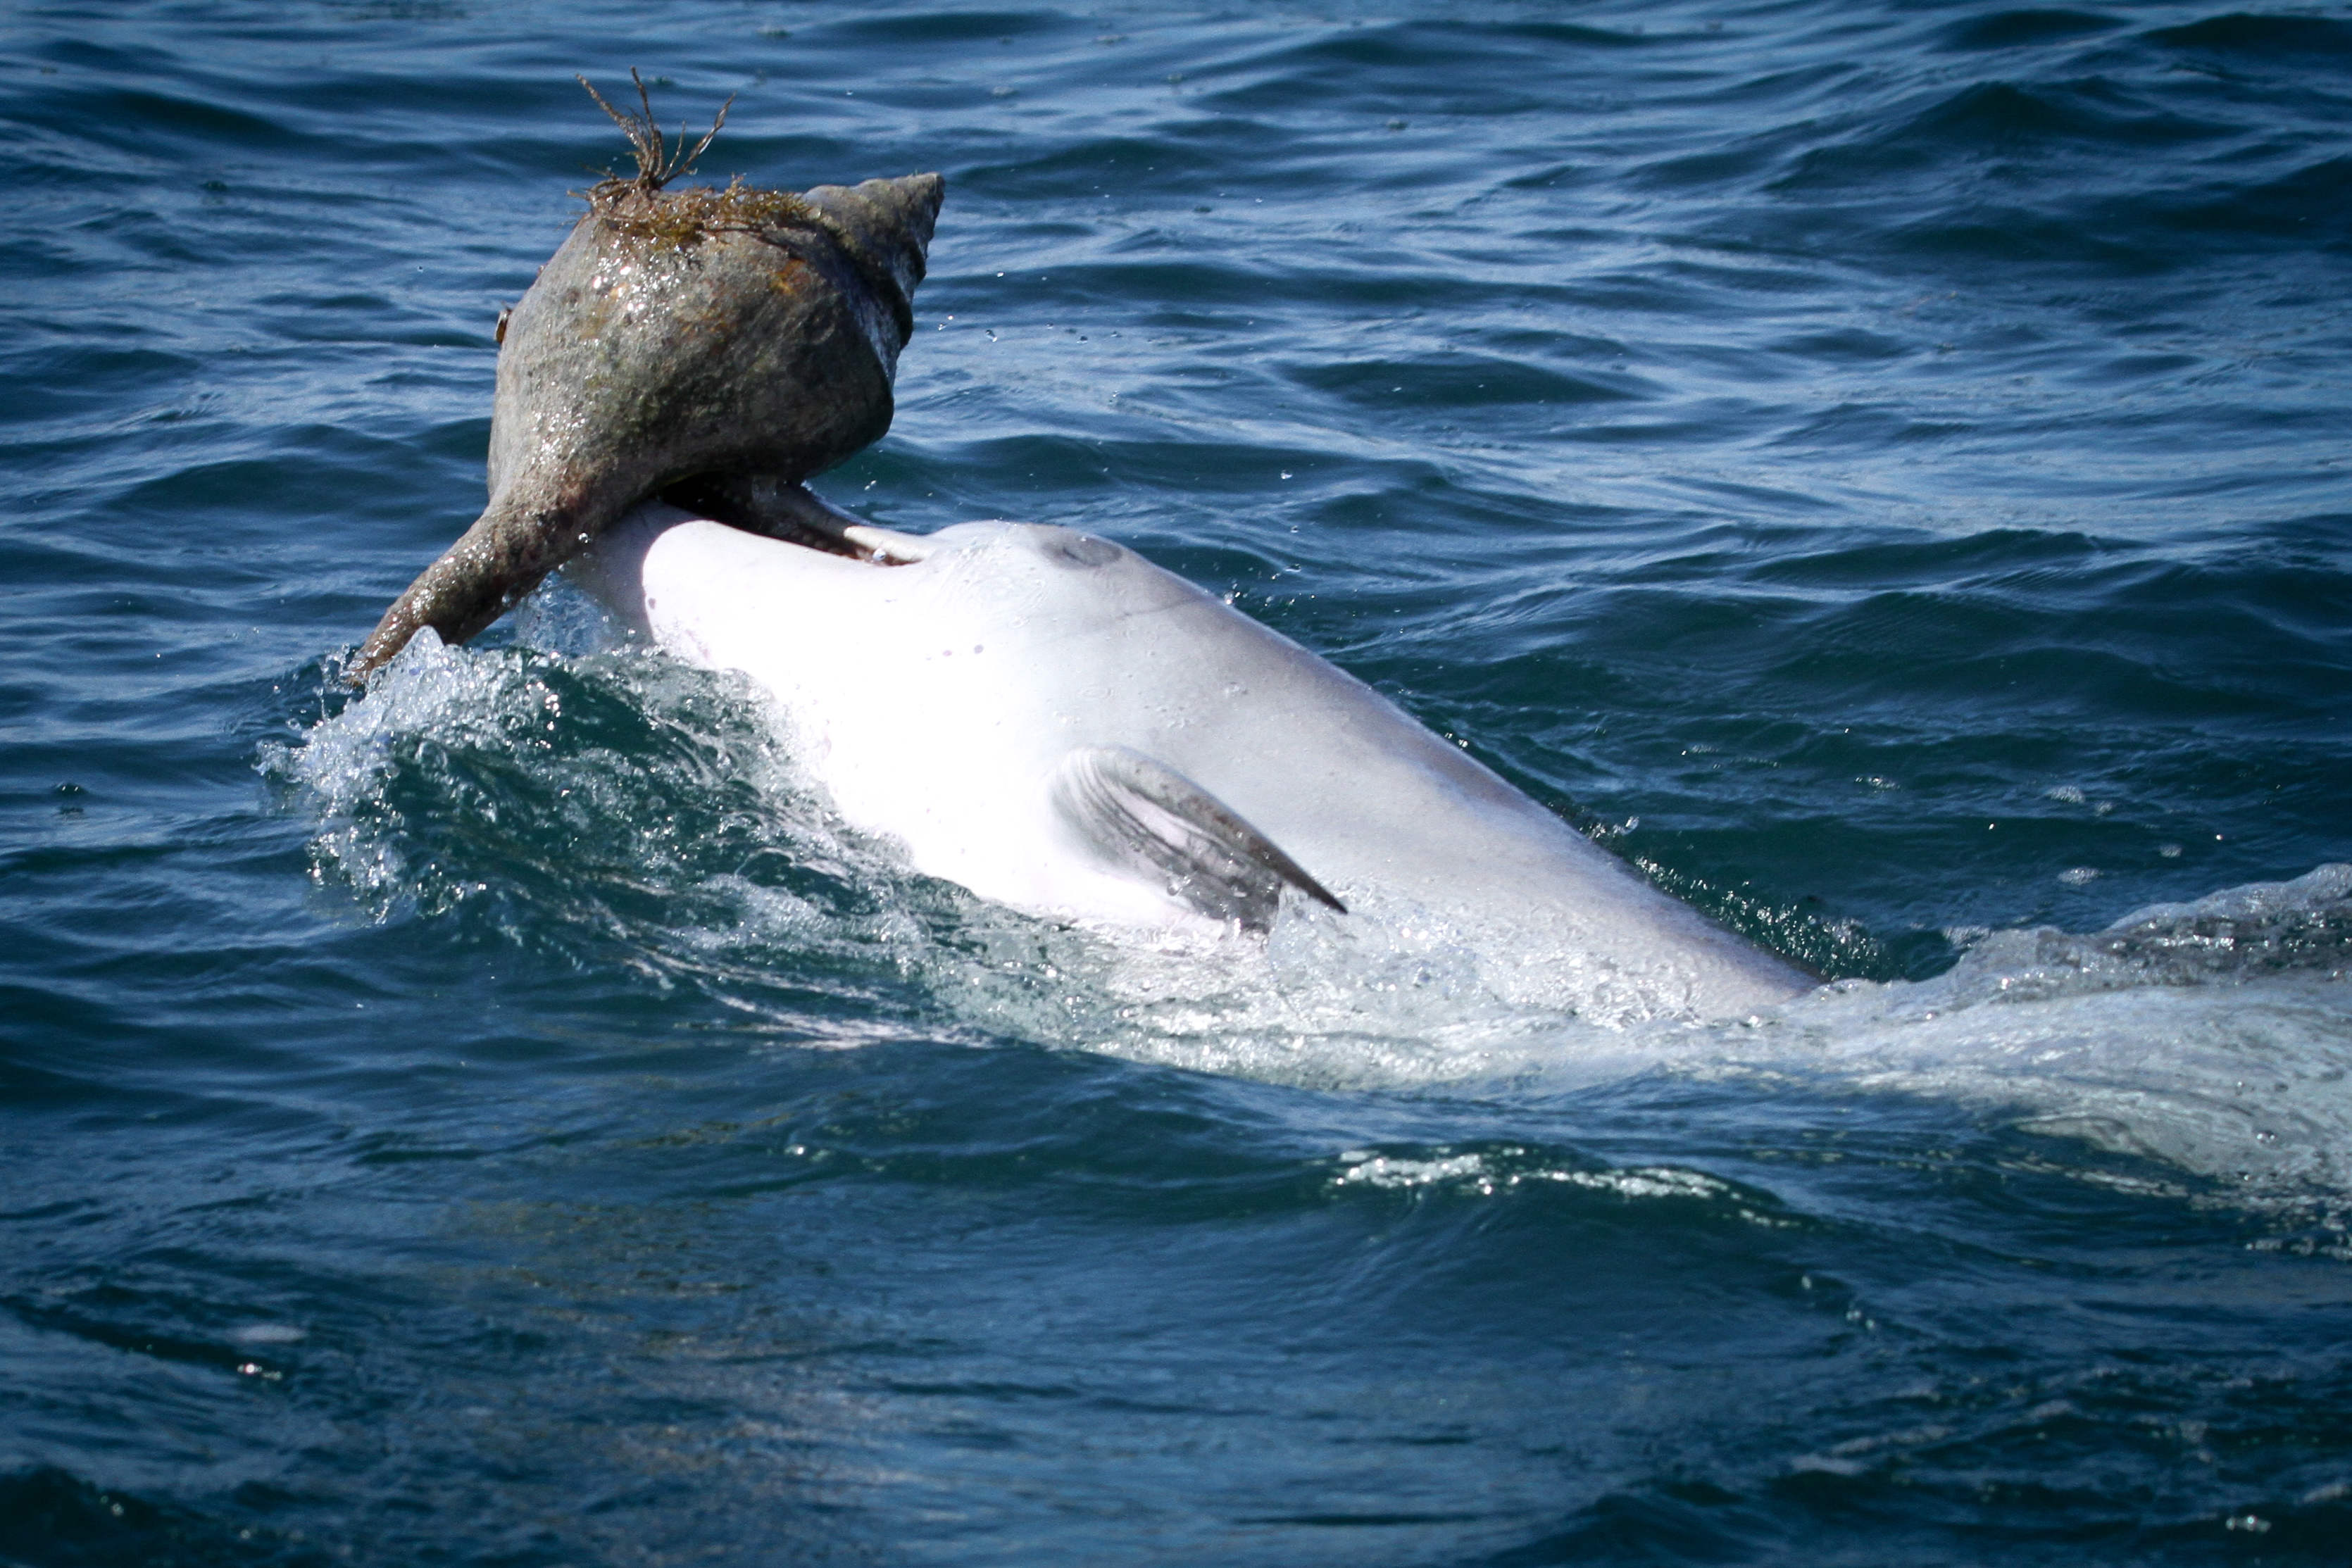 A capture of 'shelling' — a bottlenose dolphin in Shark bay catching prey using an empty shell